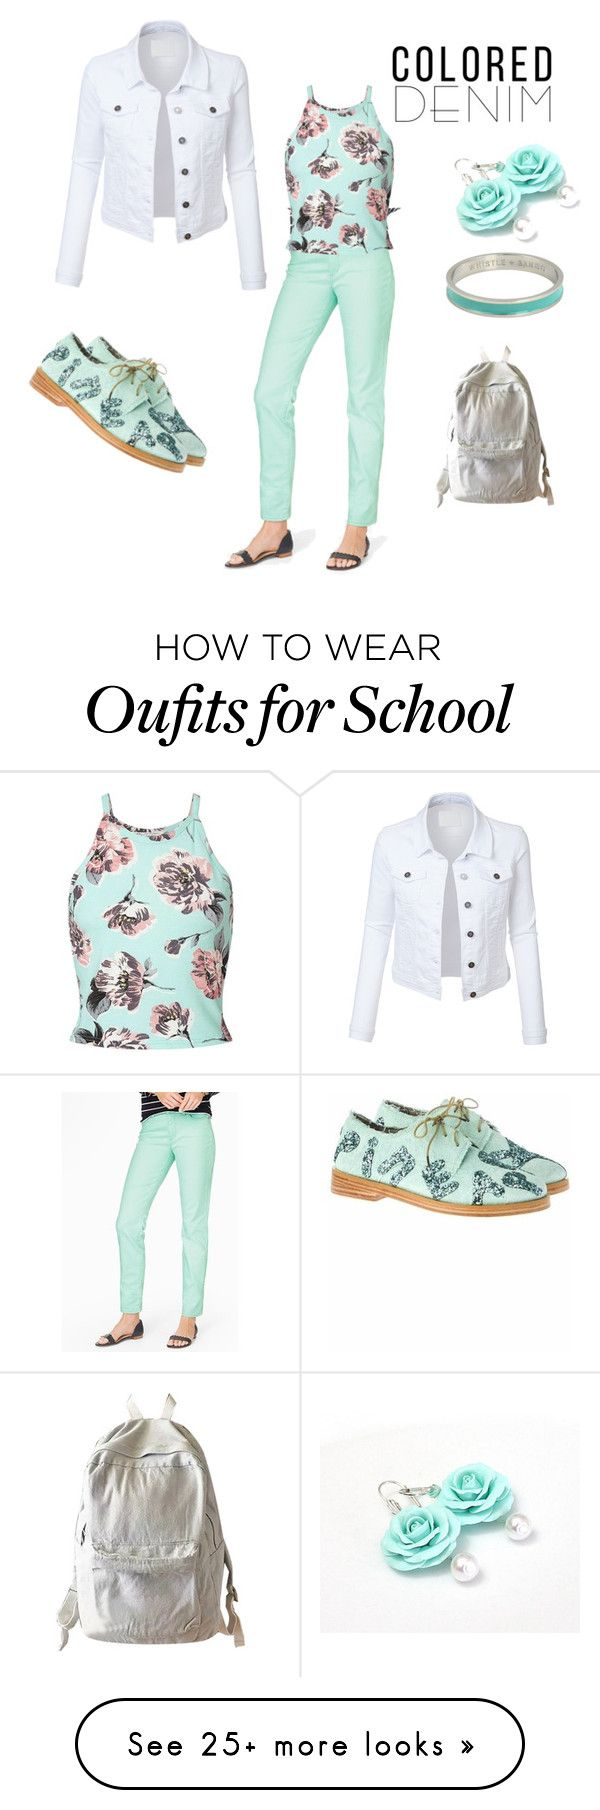 """""""Mint Denim"""" by siriusfunbysheila1954 on Polyvore featuring Talbots, Miss Selfridge, LE3NO, Anouki, WithChic and Whistle & Bango"""